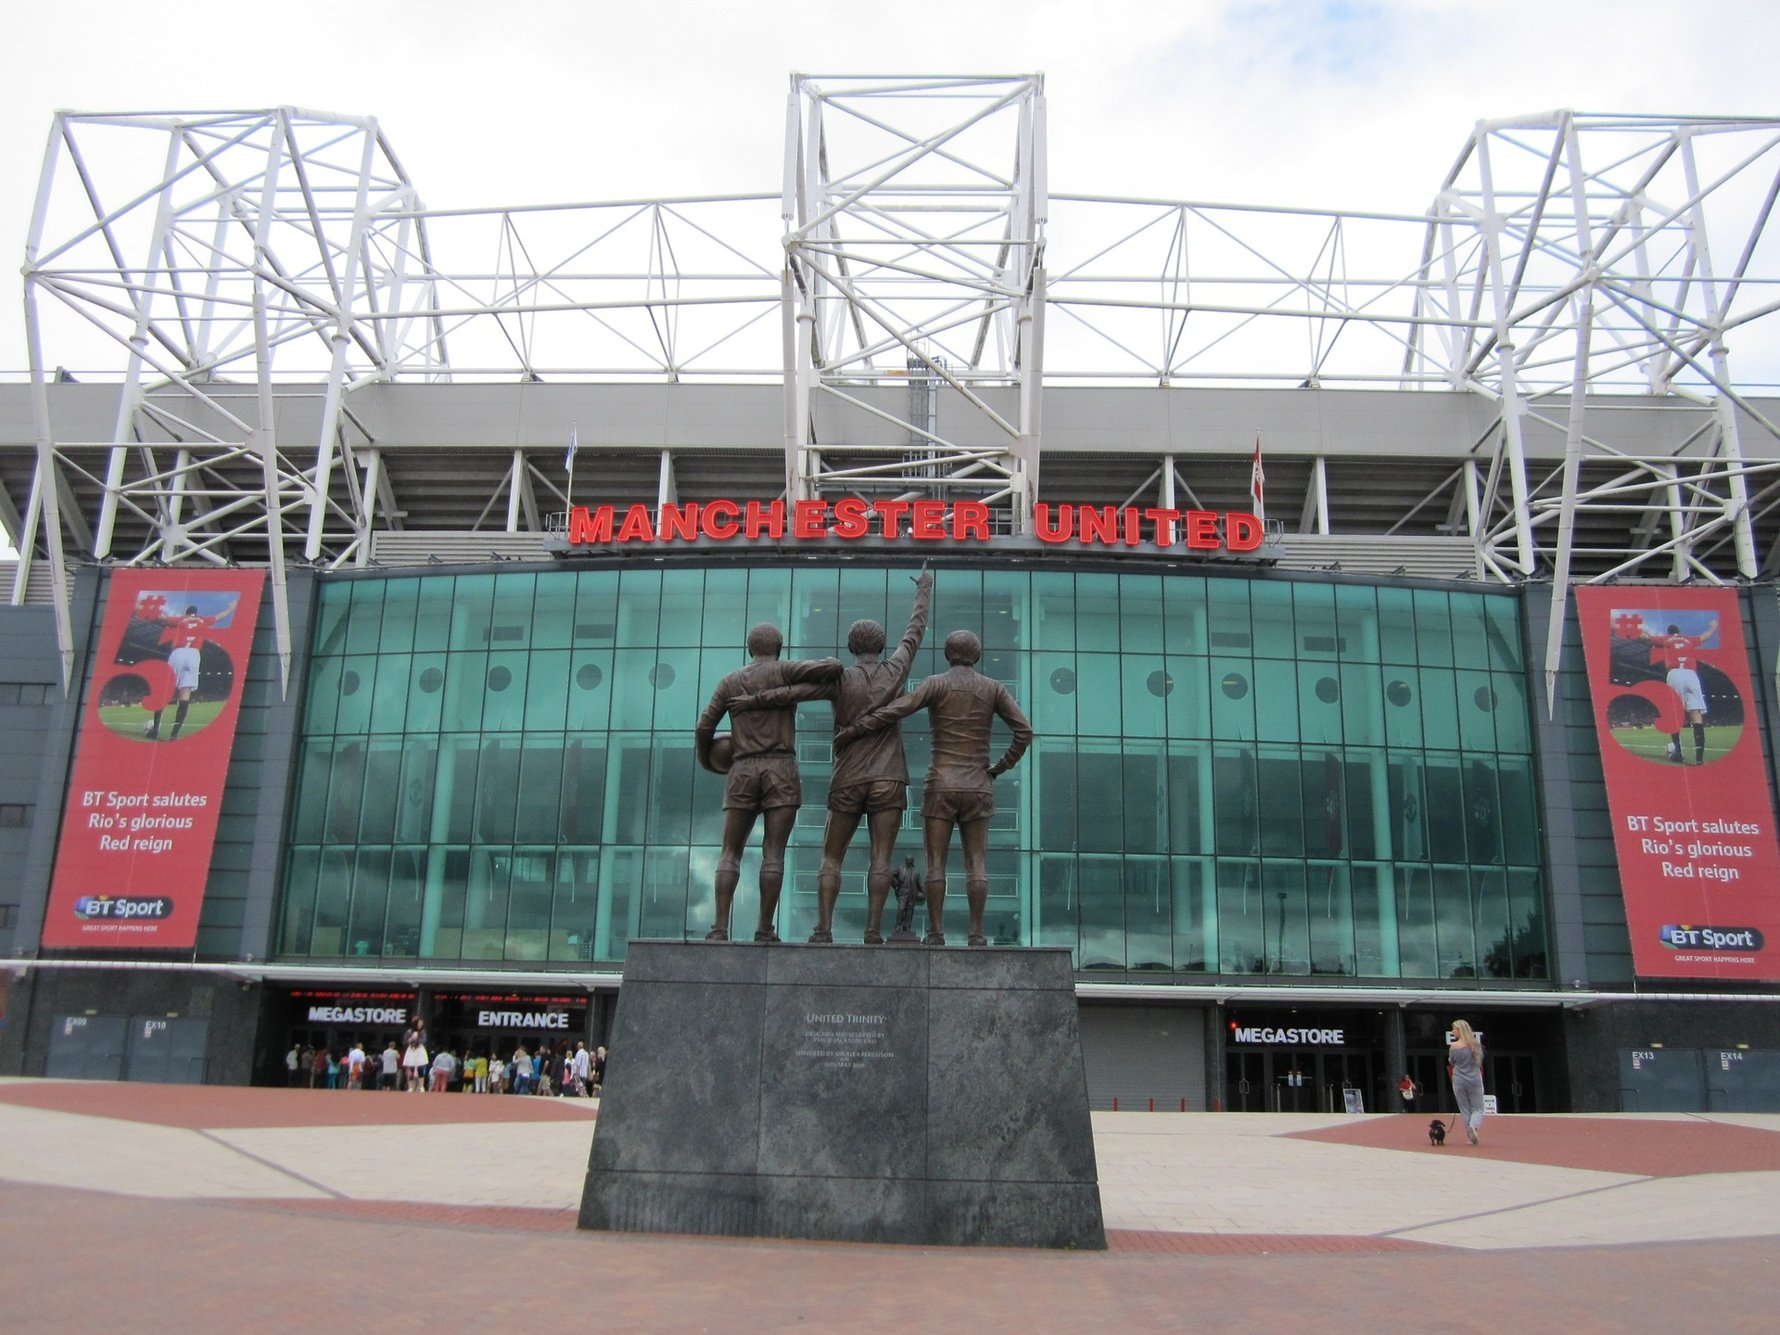 Guide to Old Trafford, Home of Manchester United in Manchester England © Karina Setiawan - Pixabay